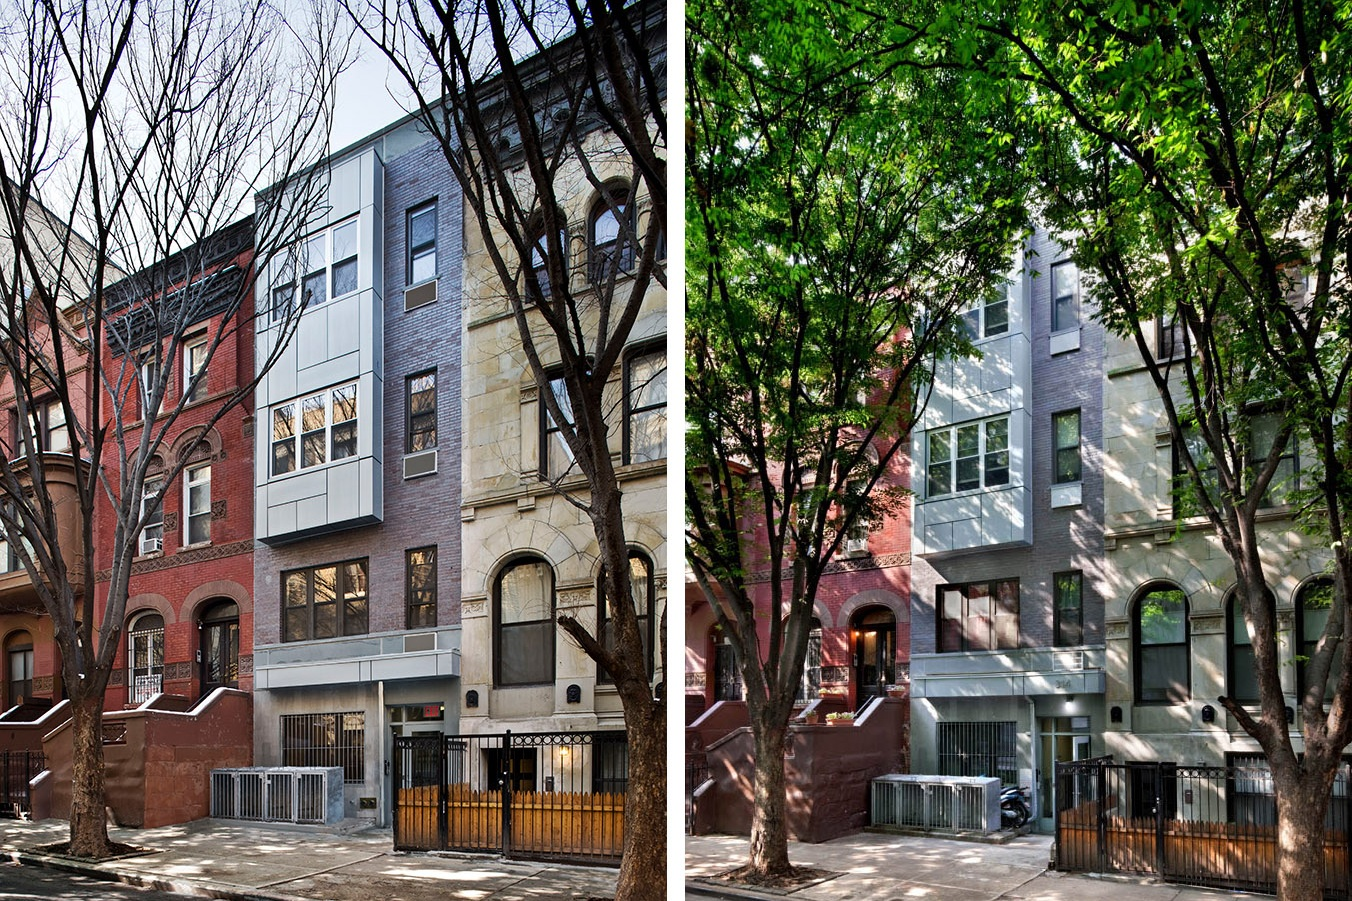 Loci 20: Week 3 - October 10, 2018Week 3: In 2007, we completed a new four-story 5,400 sf apartment building on a city-owned vacant lot. With a very modest construction budget of under $250/sf, we planned well proportioned living spaces and designed an exterior with zinc rain screen panels, bluestone trim, stucco, and brick that complement the neighborhood's rich texture. The completed project resourcefully integrated design features commonly found in more expensive developments with Harlem's need for mixed income housing.